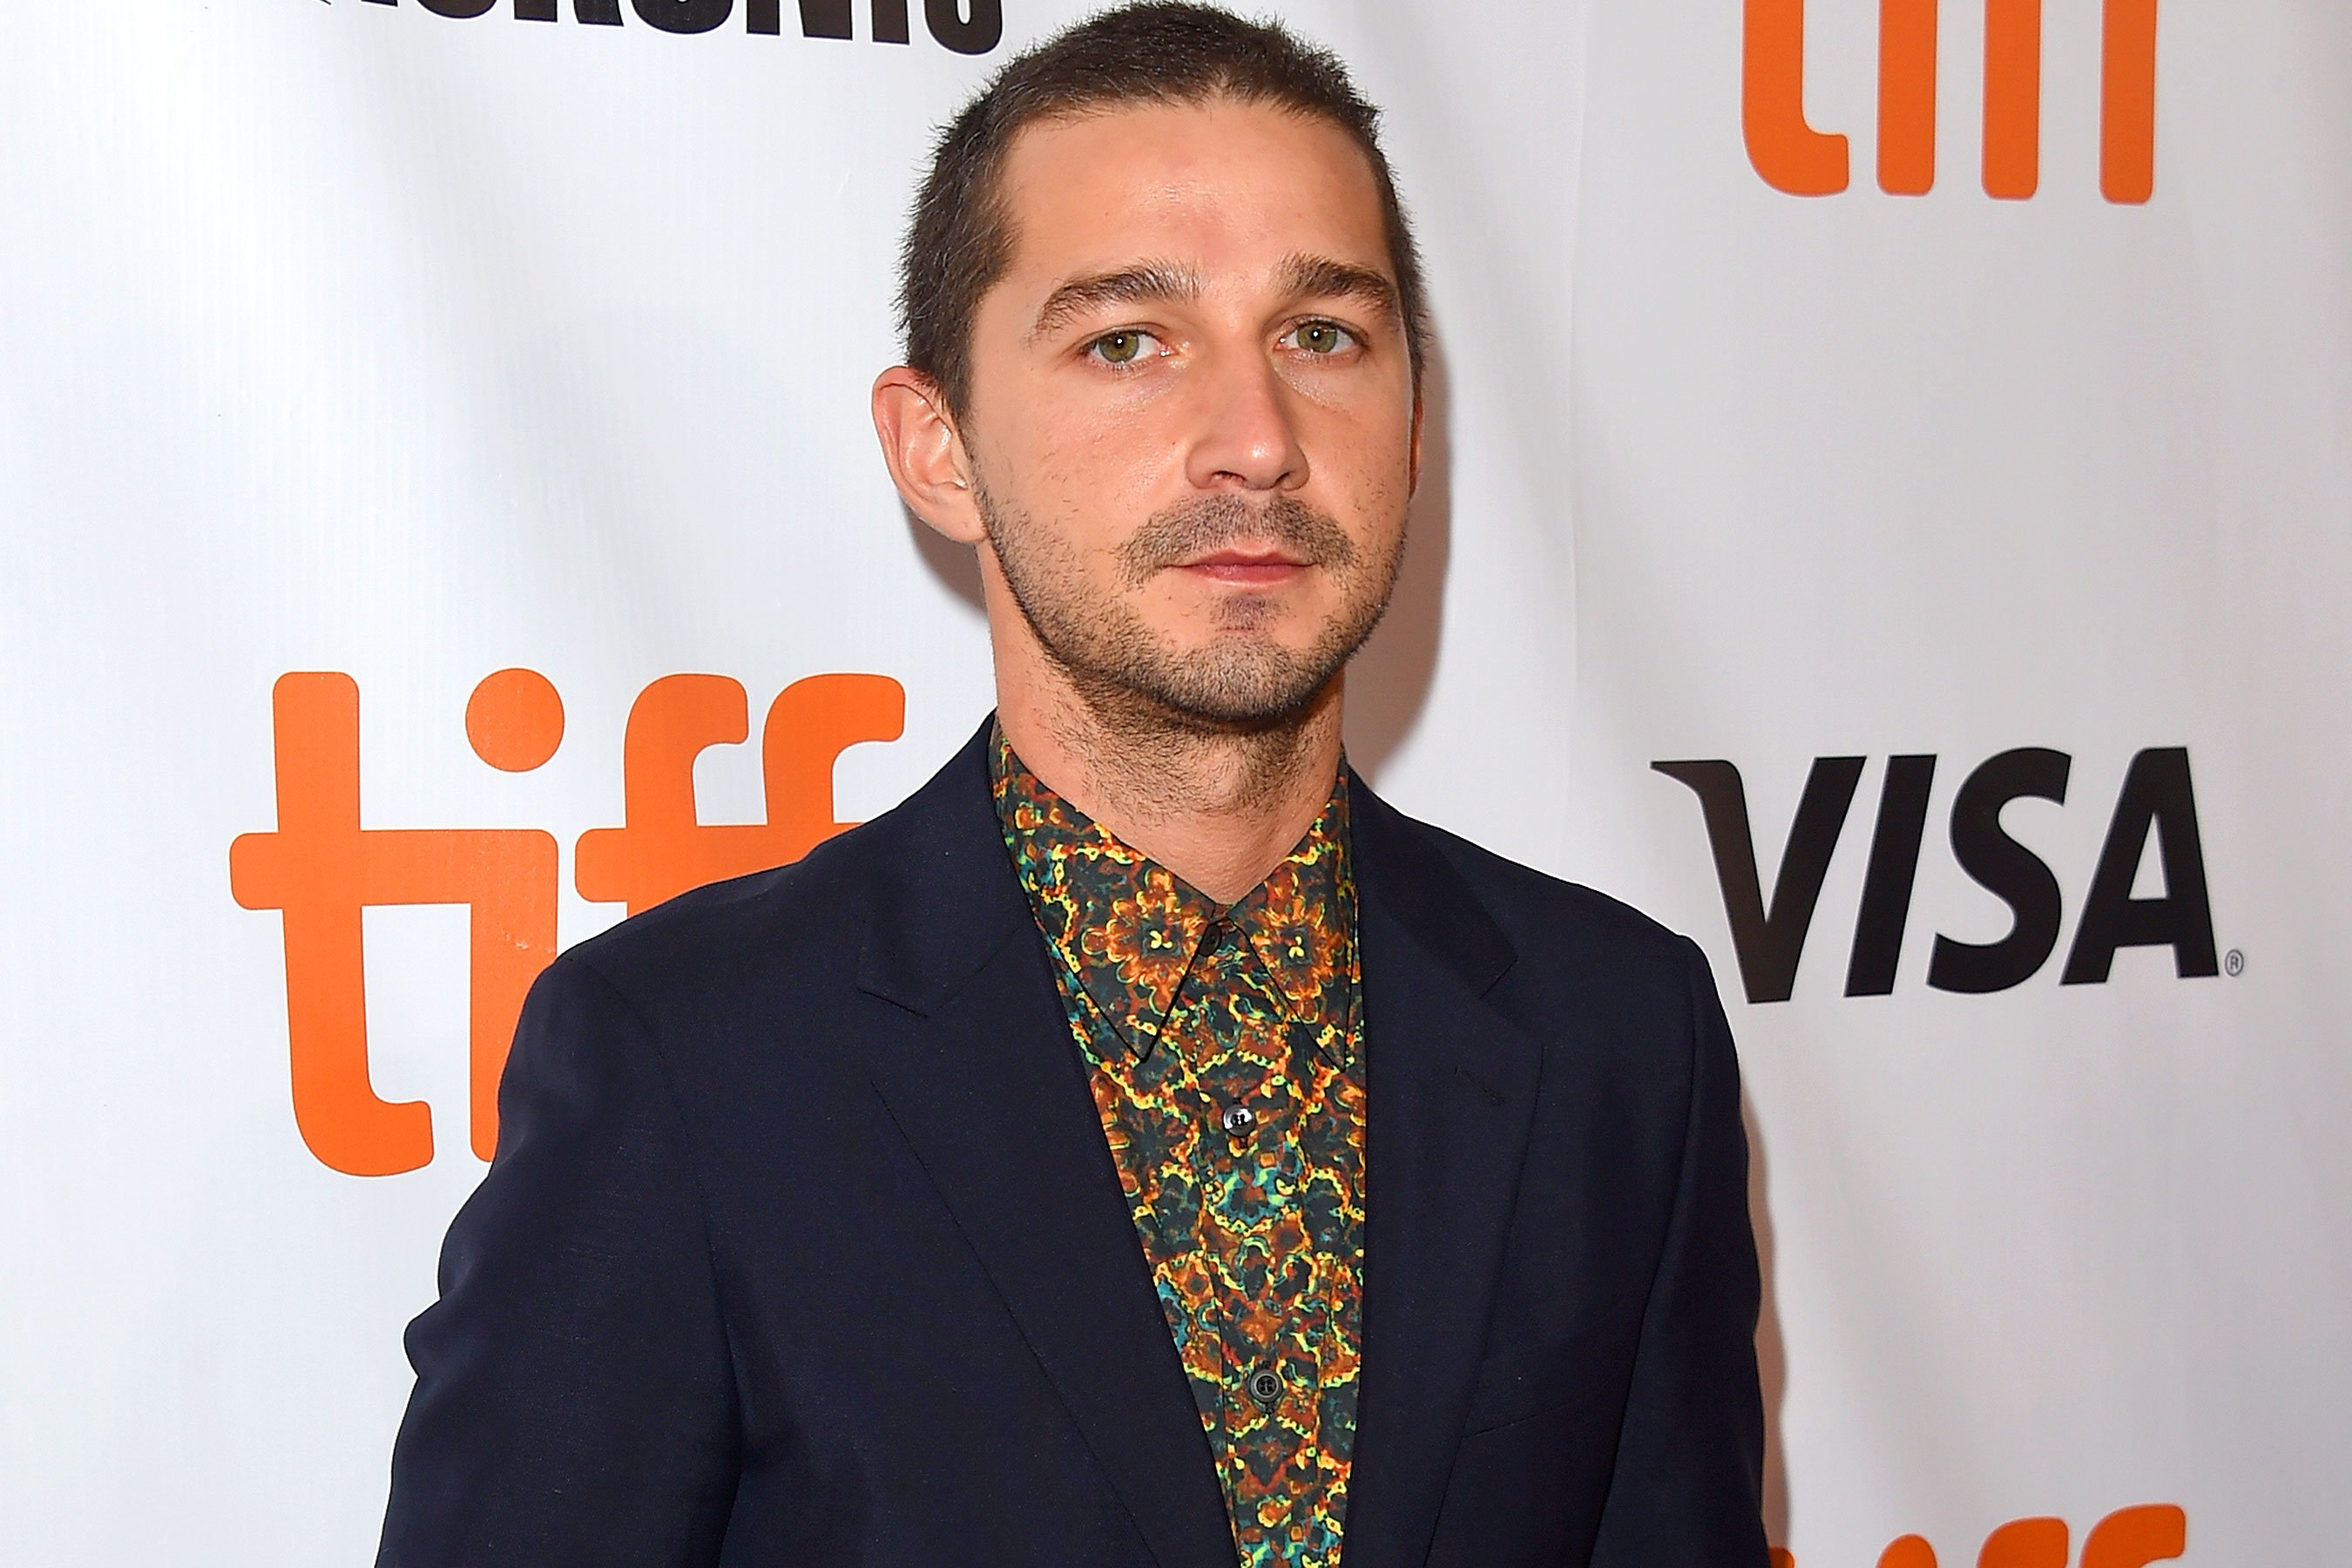 Shia LaBeouf arrest in Georgia was mortifying, actor says in first interview since incident